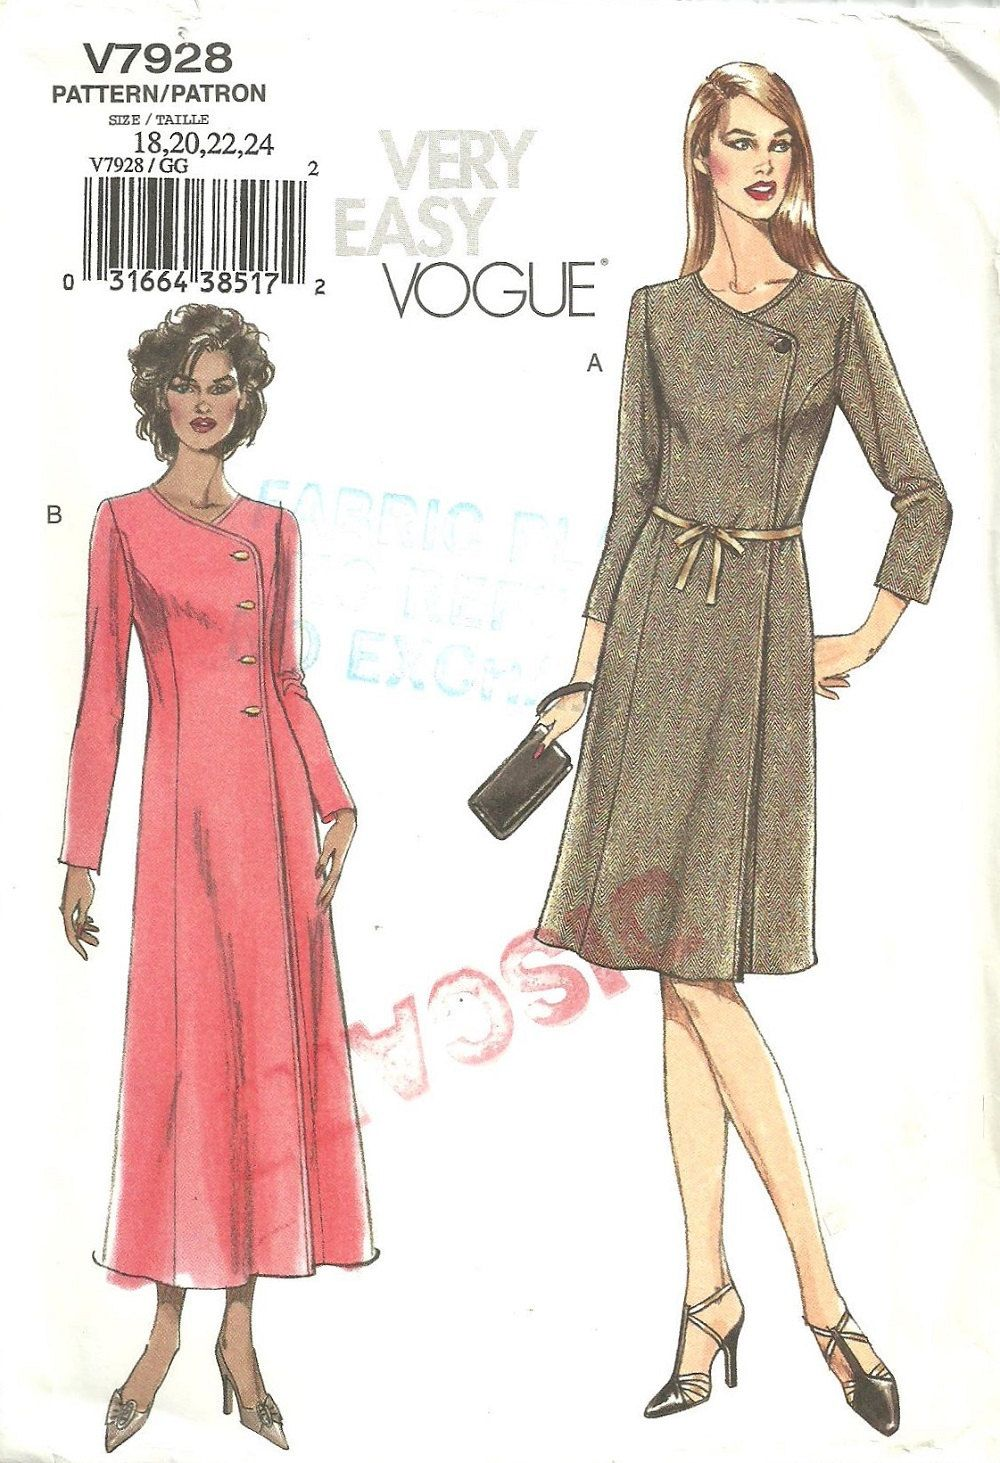 Vogue 7928 very easy sewing pattern wrap by studiogpatterns vogue 7928 very easy sewing pattern wrap dress sizes 18 20 22 24 jeuxipadfo Images